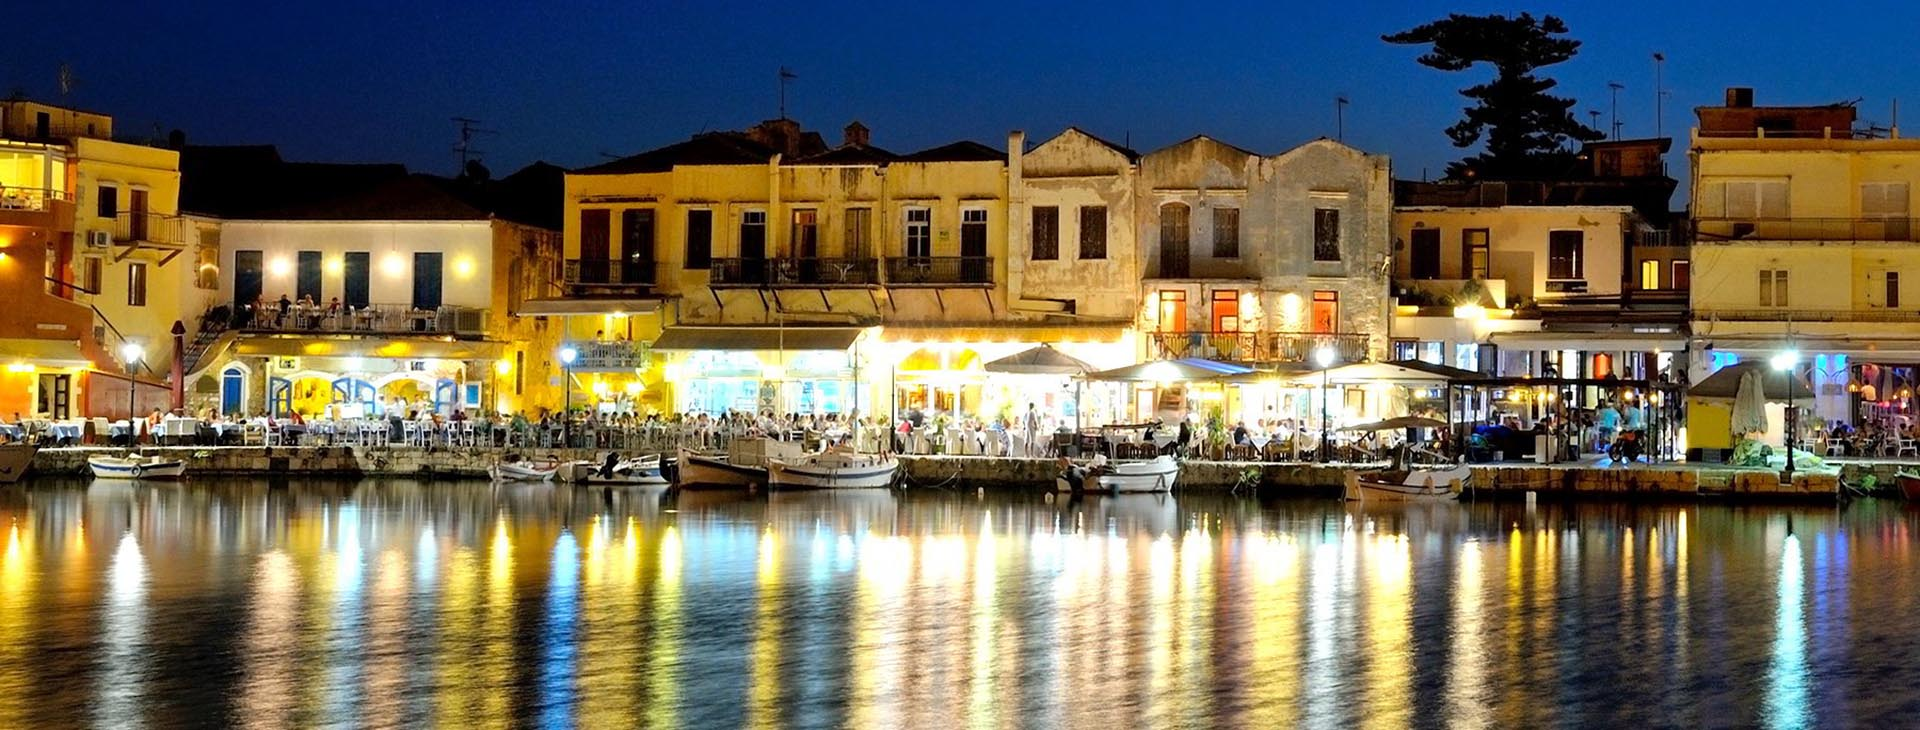 Town of Rethymnon: The old harbour